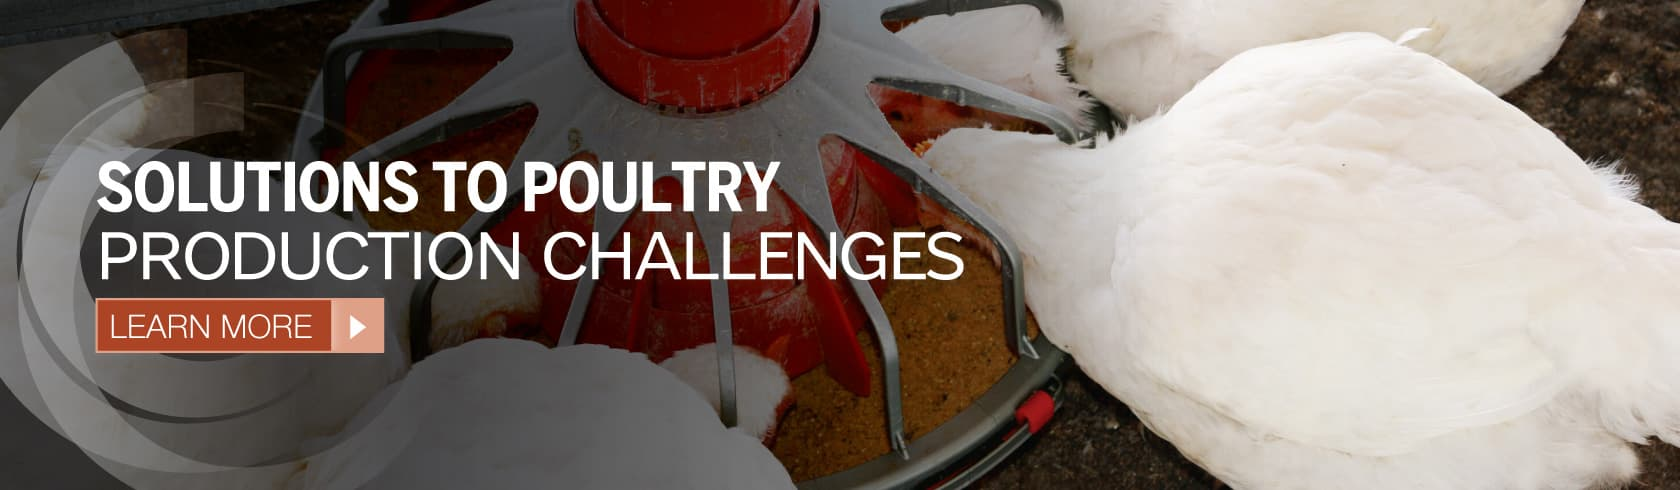 Solutions to poultry production challenges